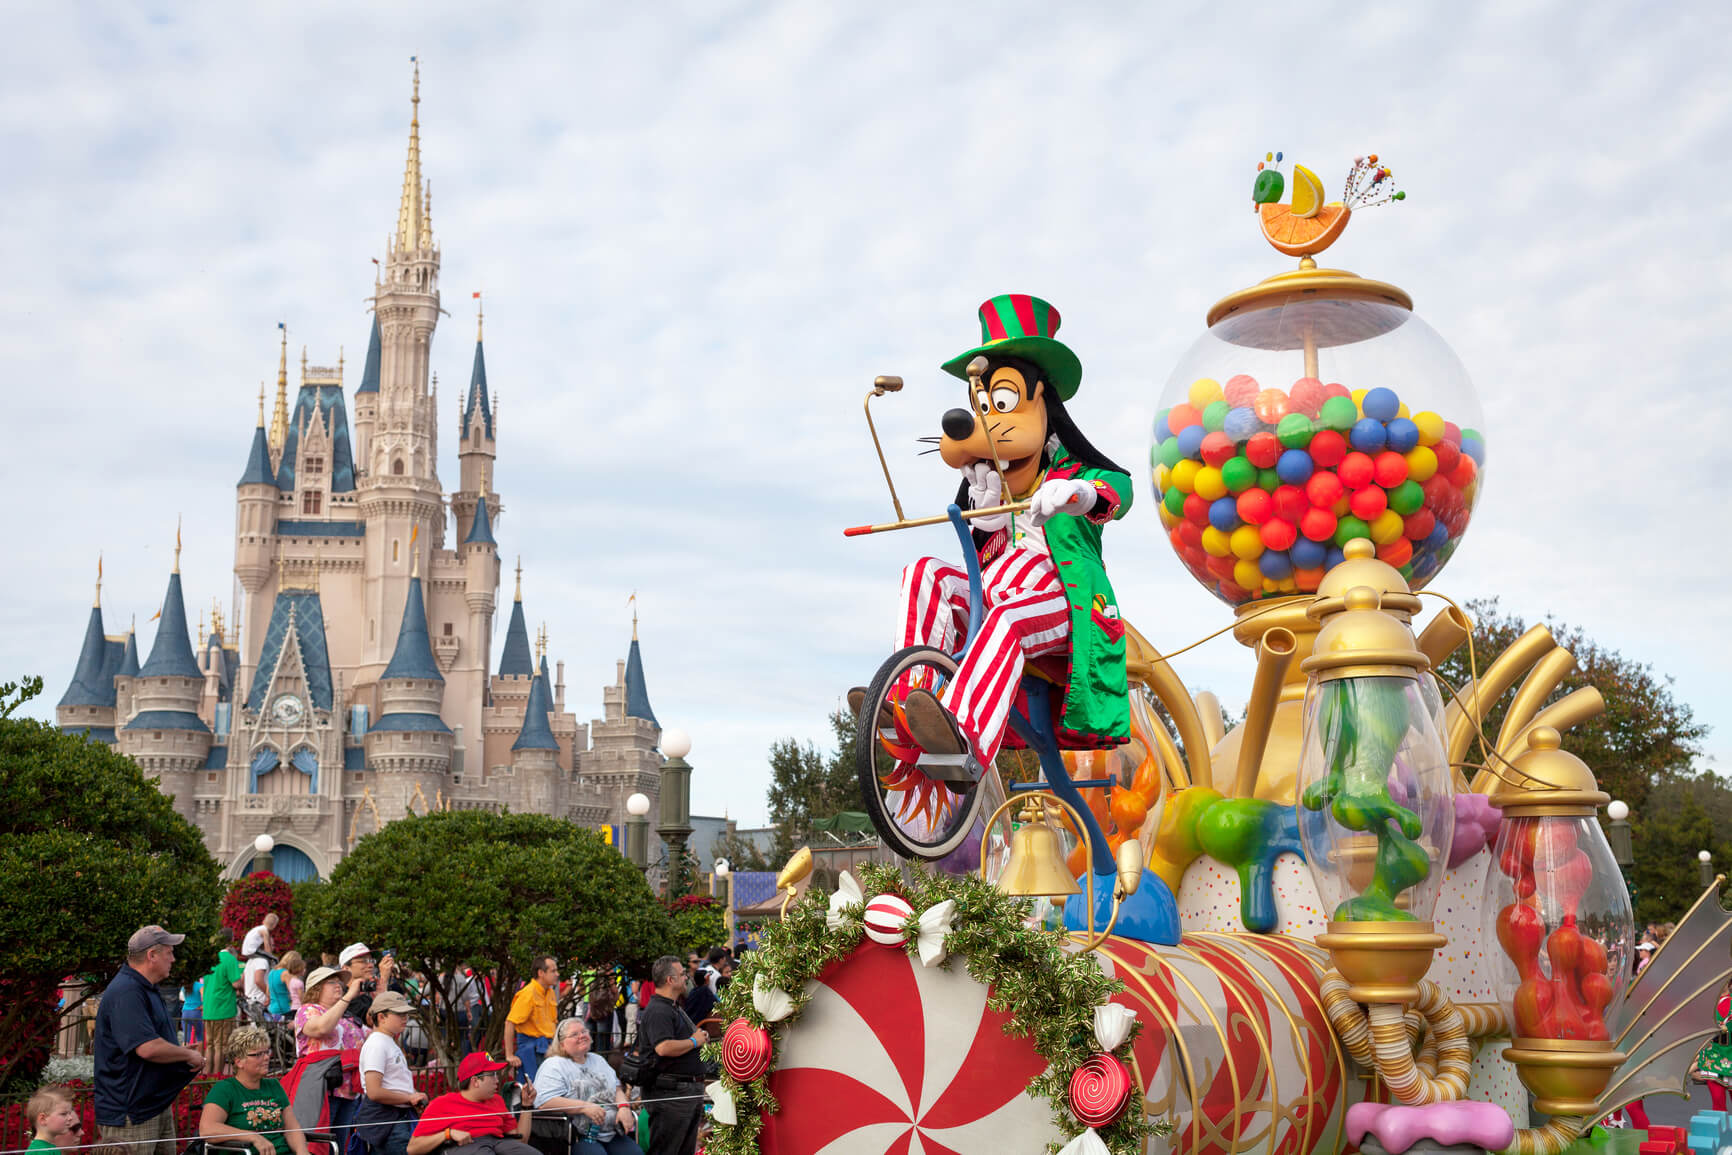 Non-stop from Manchester, UK to Orlando, Florida for only £300 roundtrip